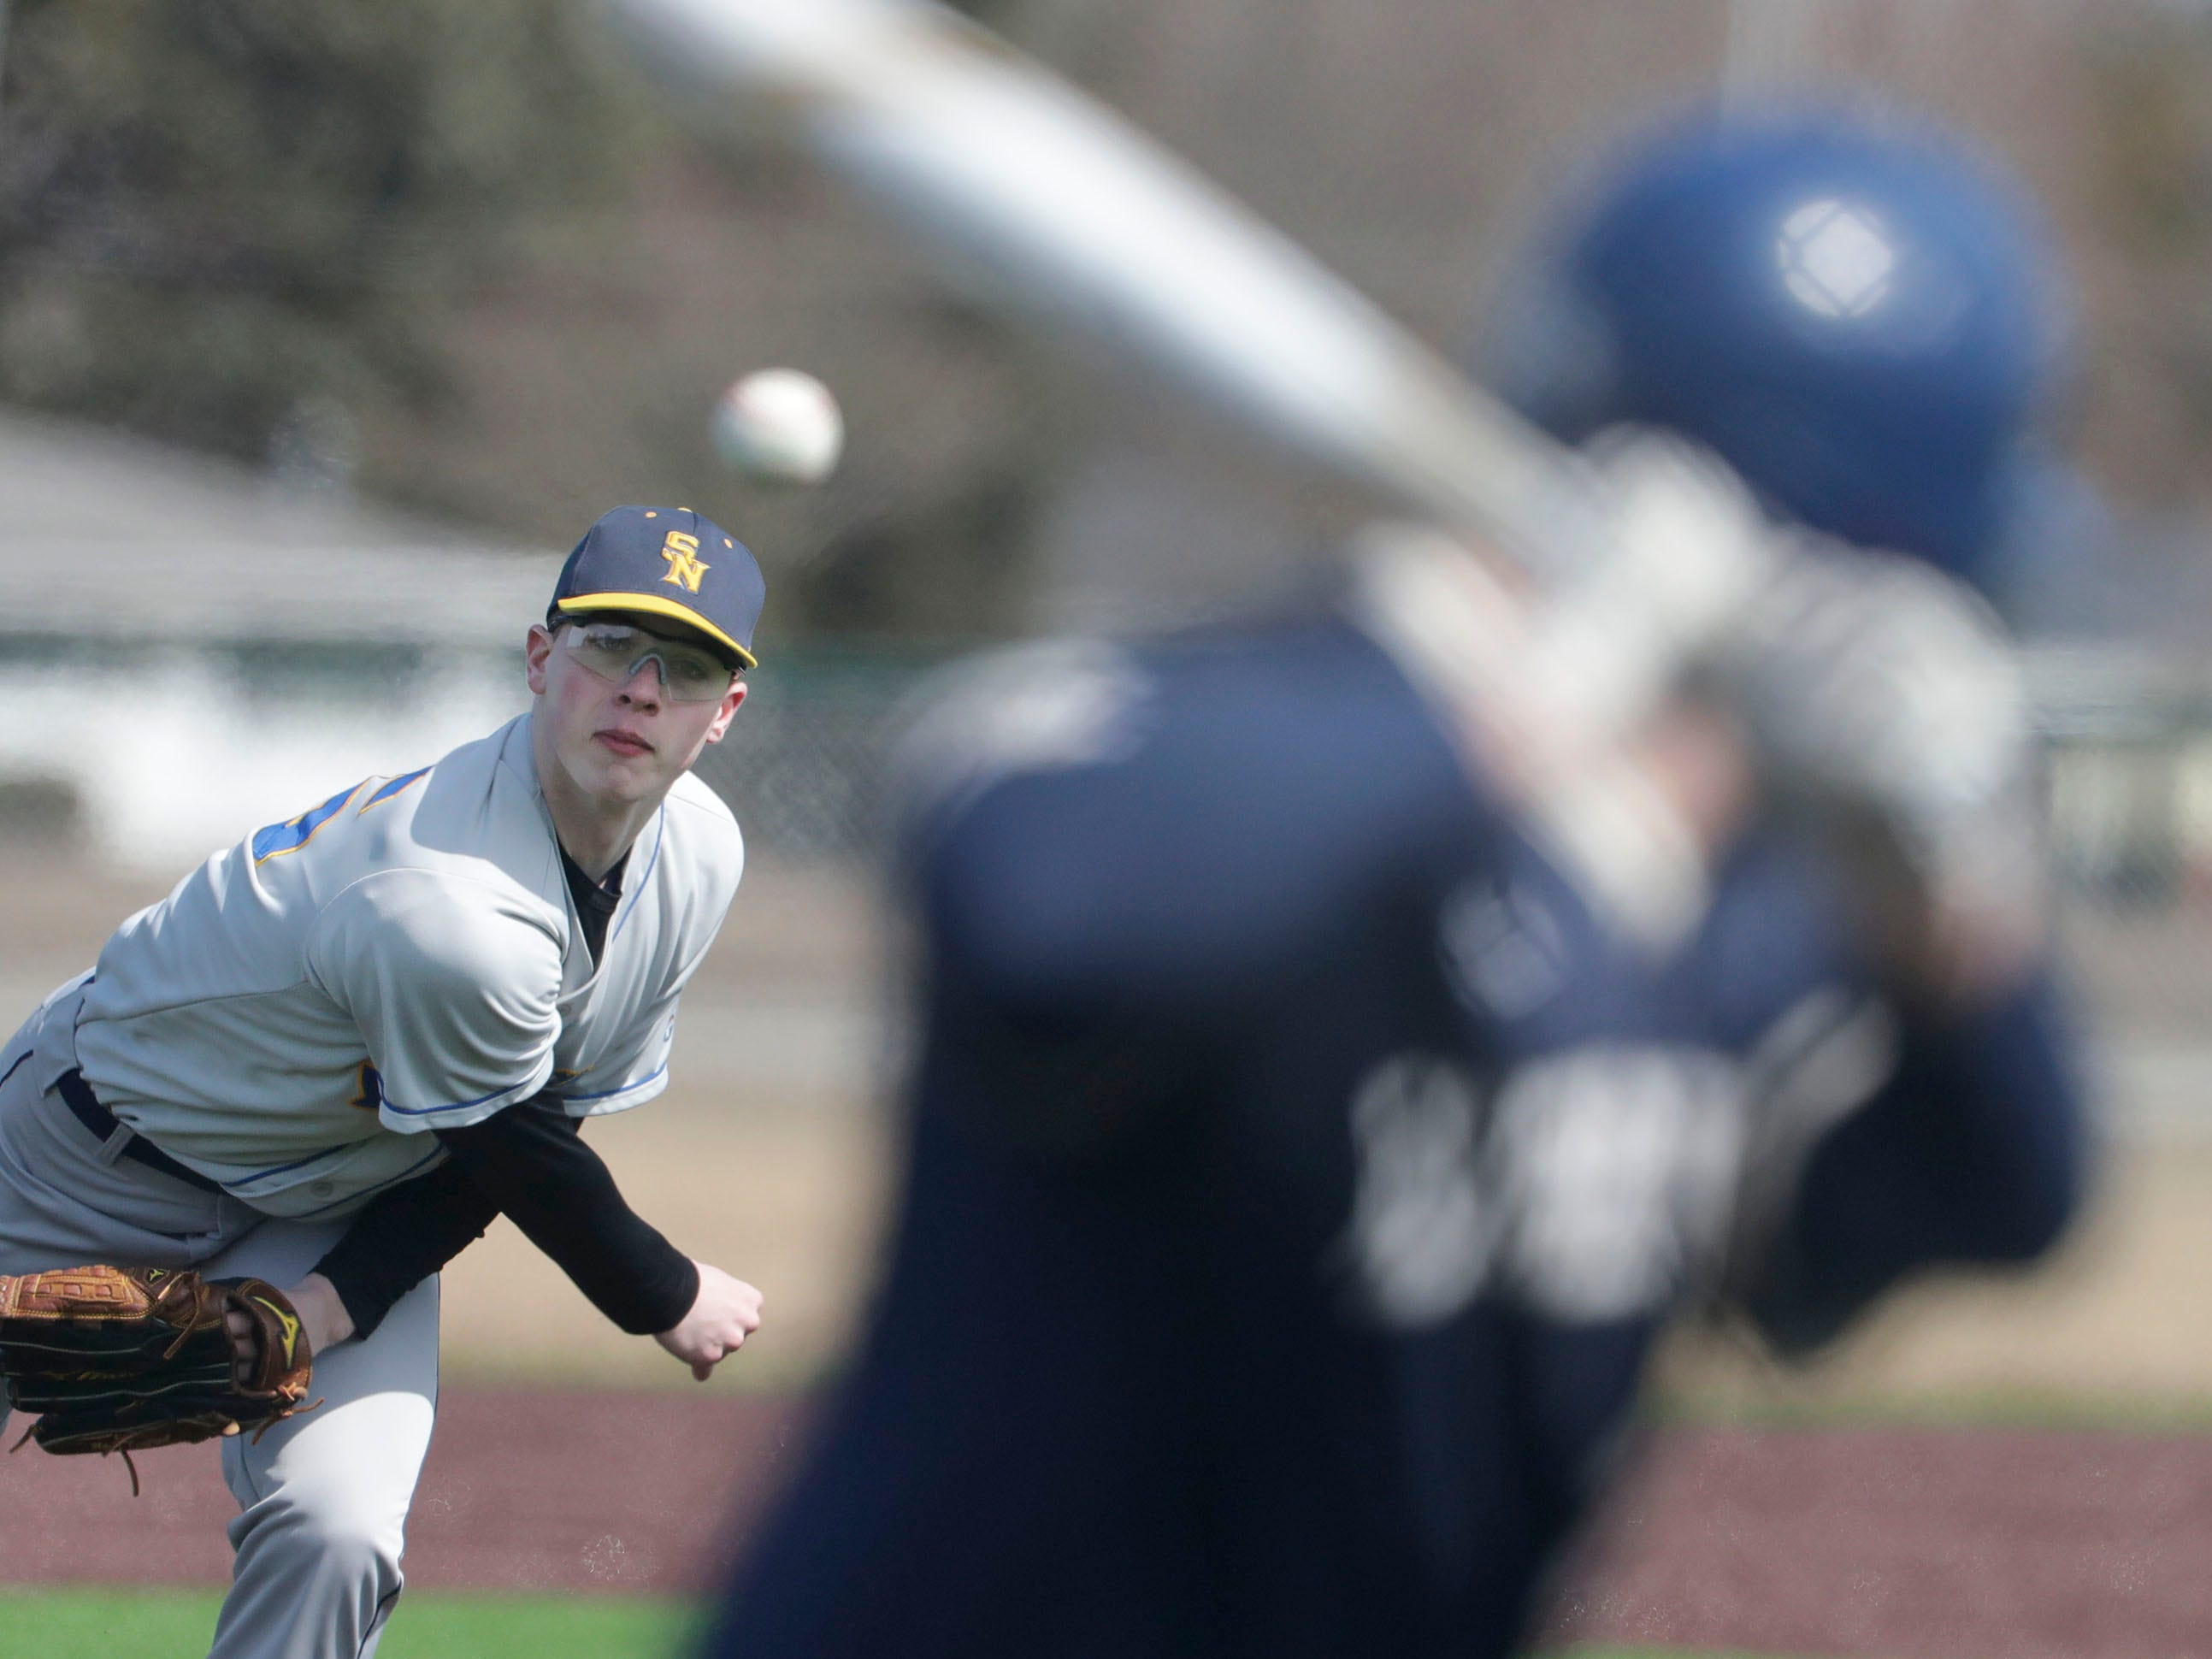 Sheboygan North's Ben Vorphal (25) winds out a photo against Appleton North, Friday, March 29, 2019, at the Field of Dreams complex in Sheboygan, Wis.